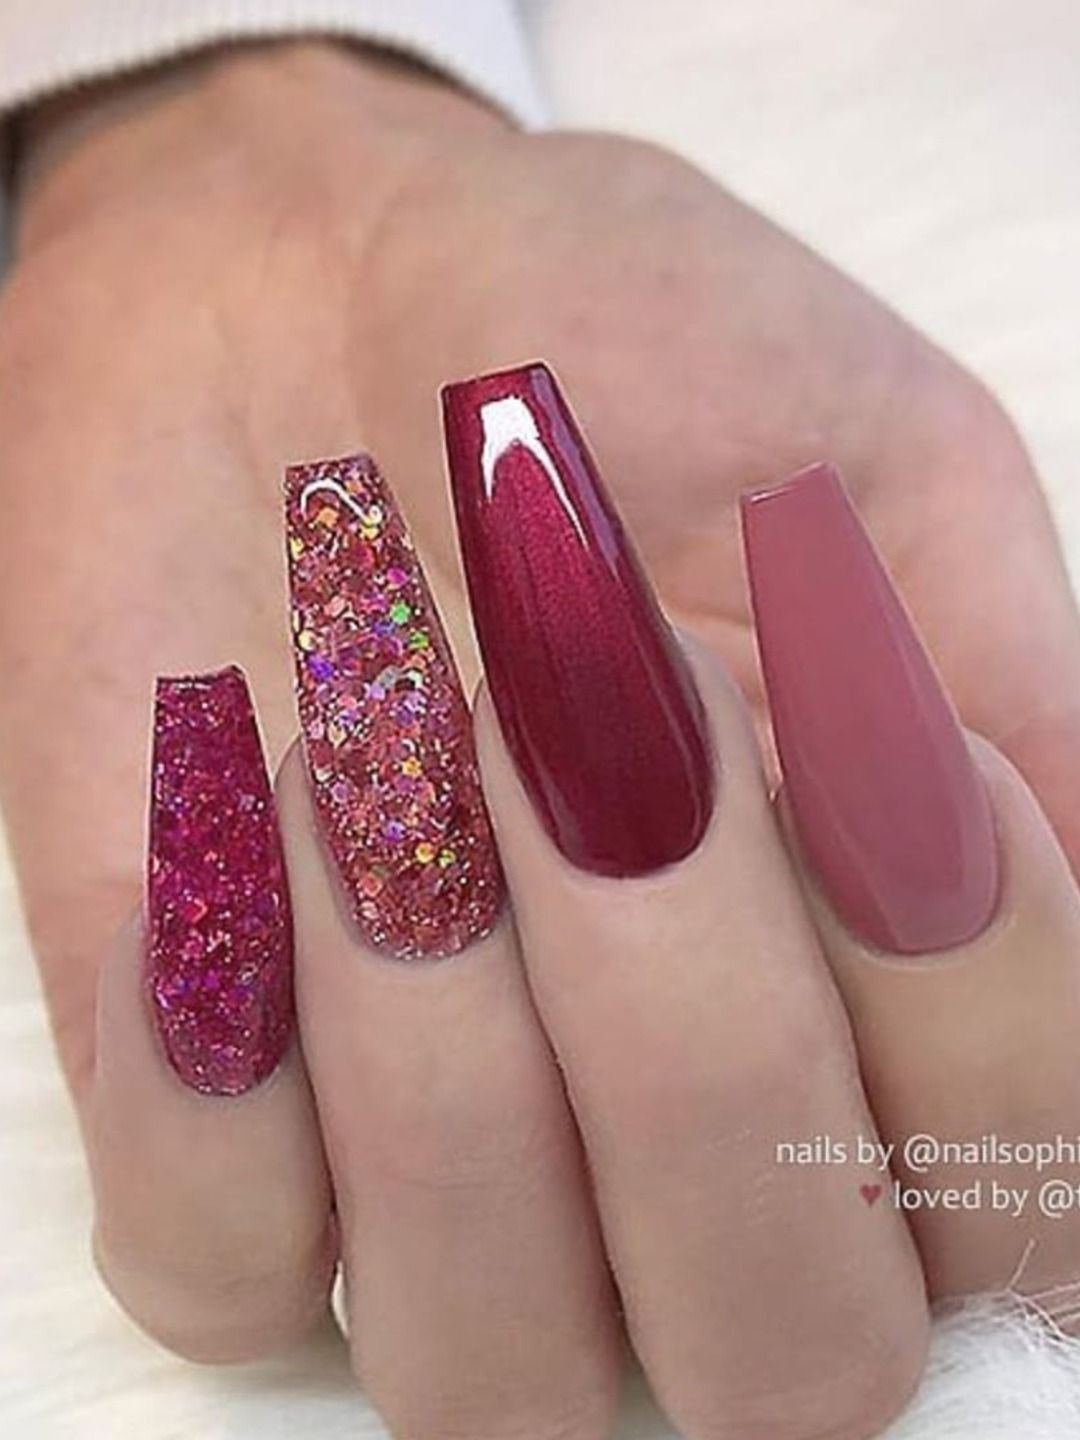 Pin By Donnie Martinez On Denver Broncos Nails In 2020 Coffin Nails Designs Fall Manicure Fancy Nails